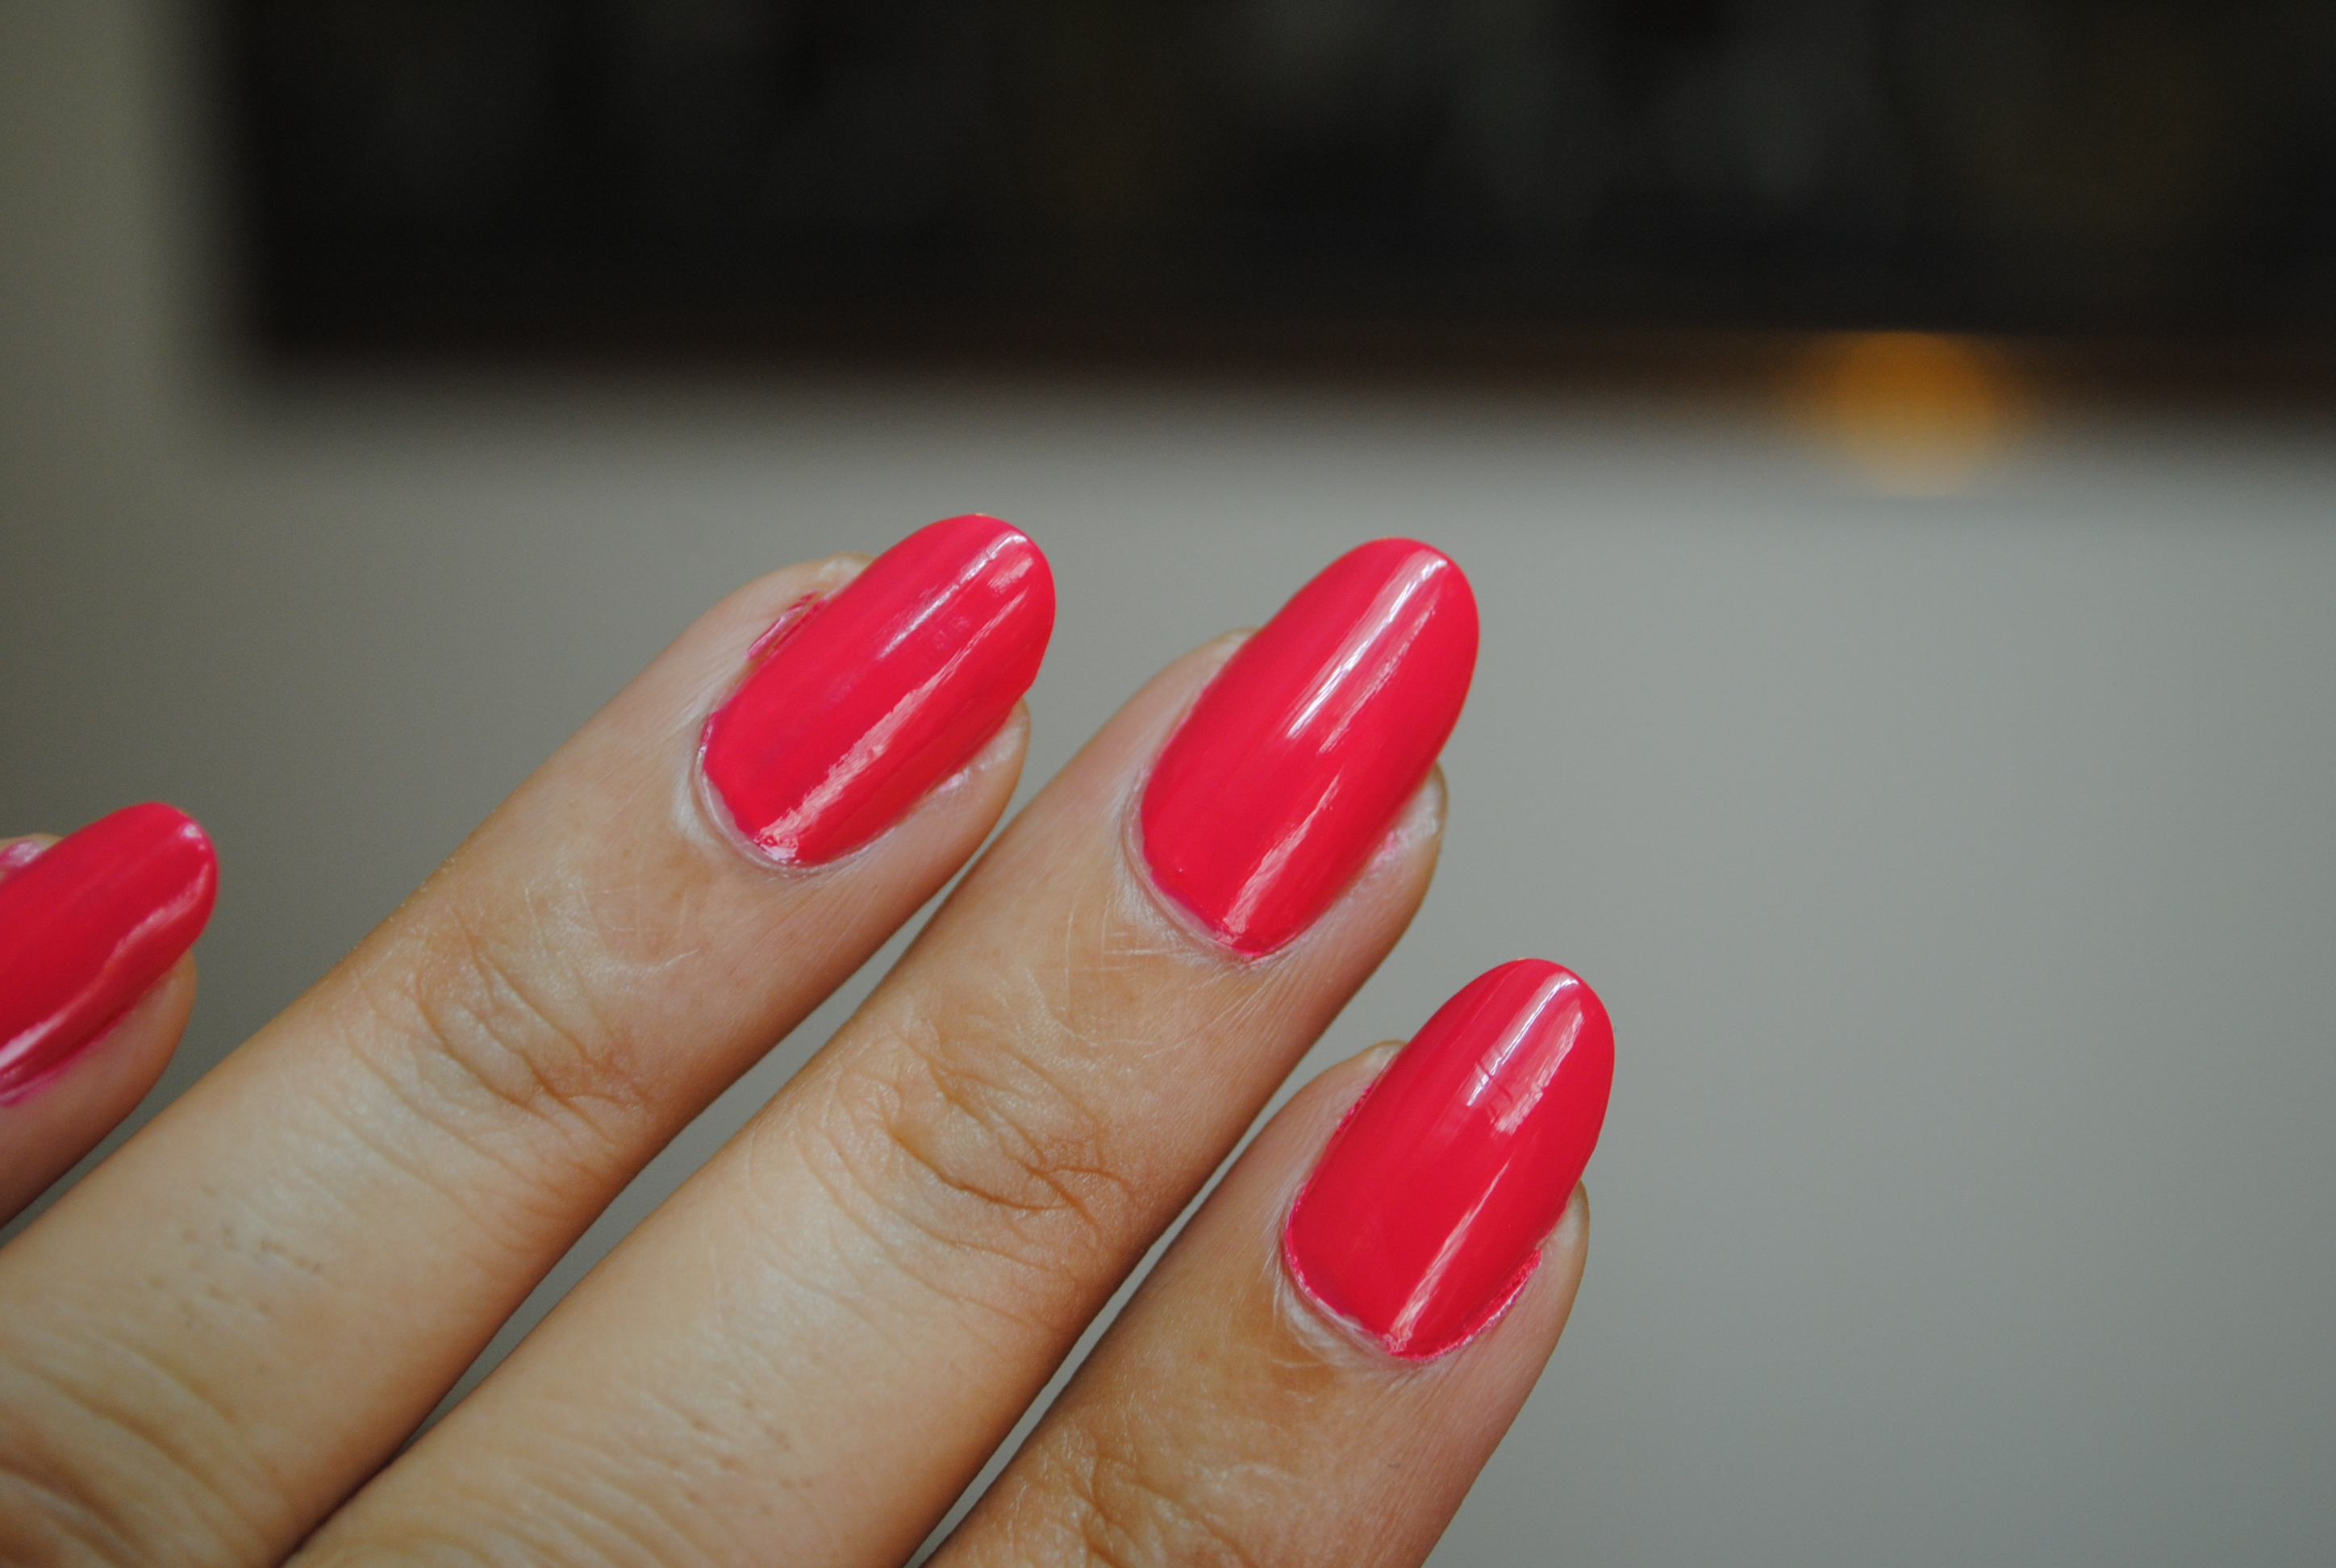 Colorbar Quick Finish Nail Paint in Oodles of Pink | Blushes & Sparkle